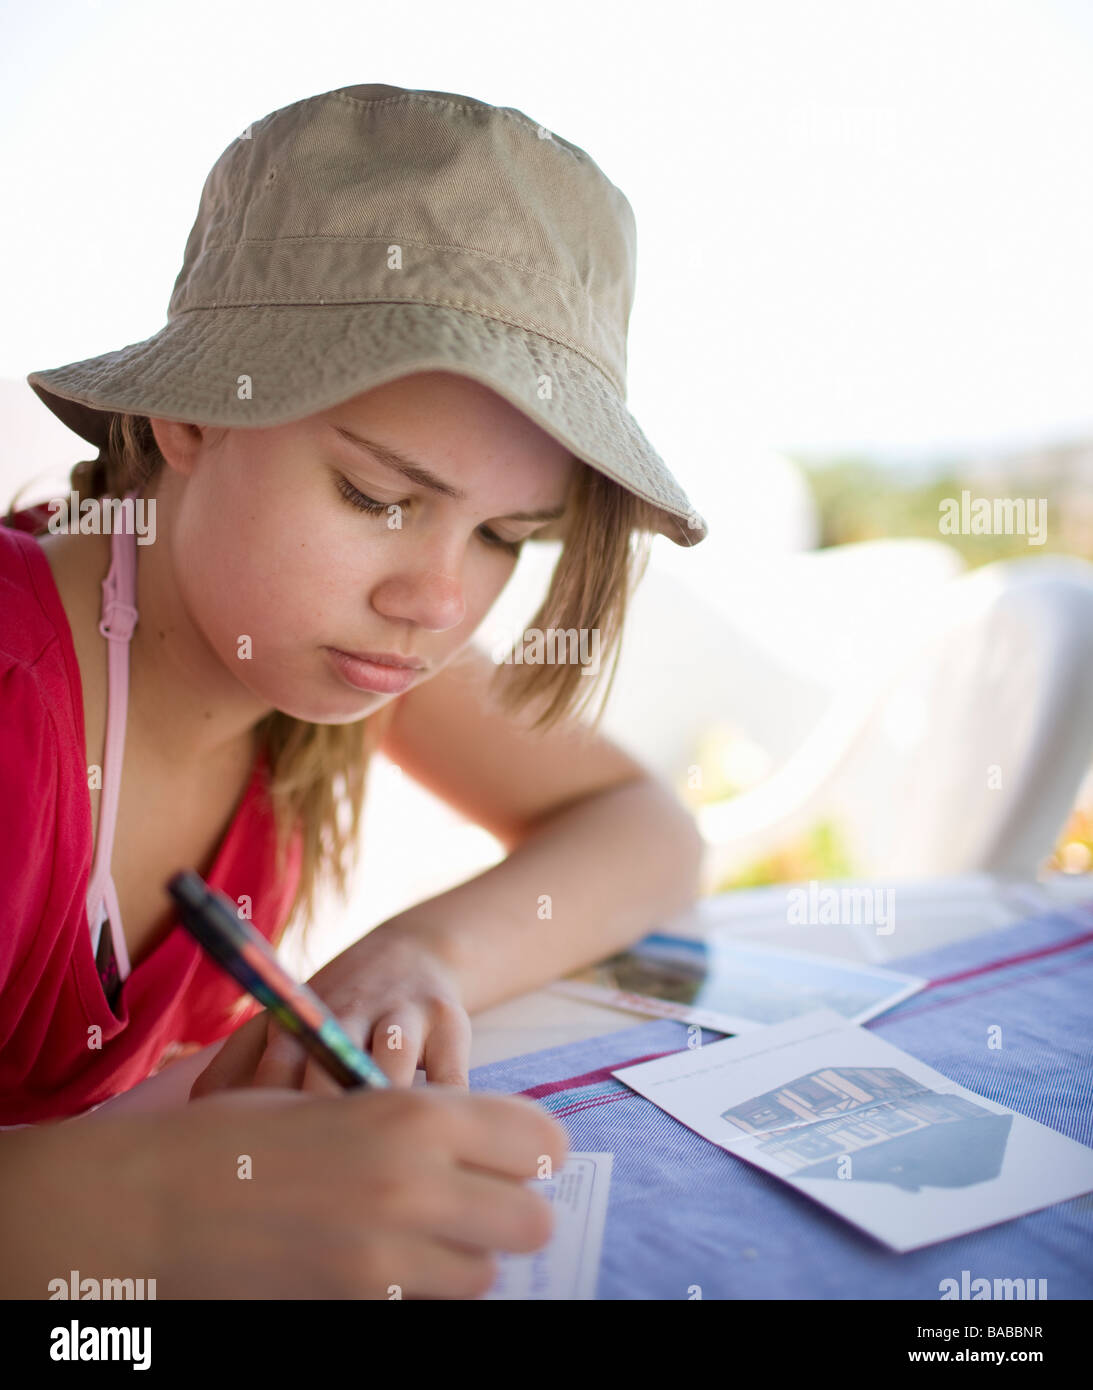 A girl writing a postcard Andalusia Spain. - Stock Image